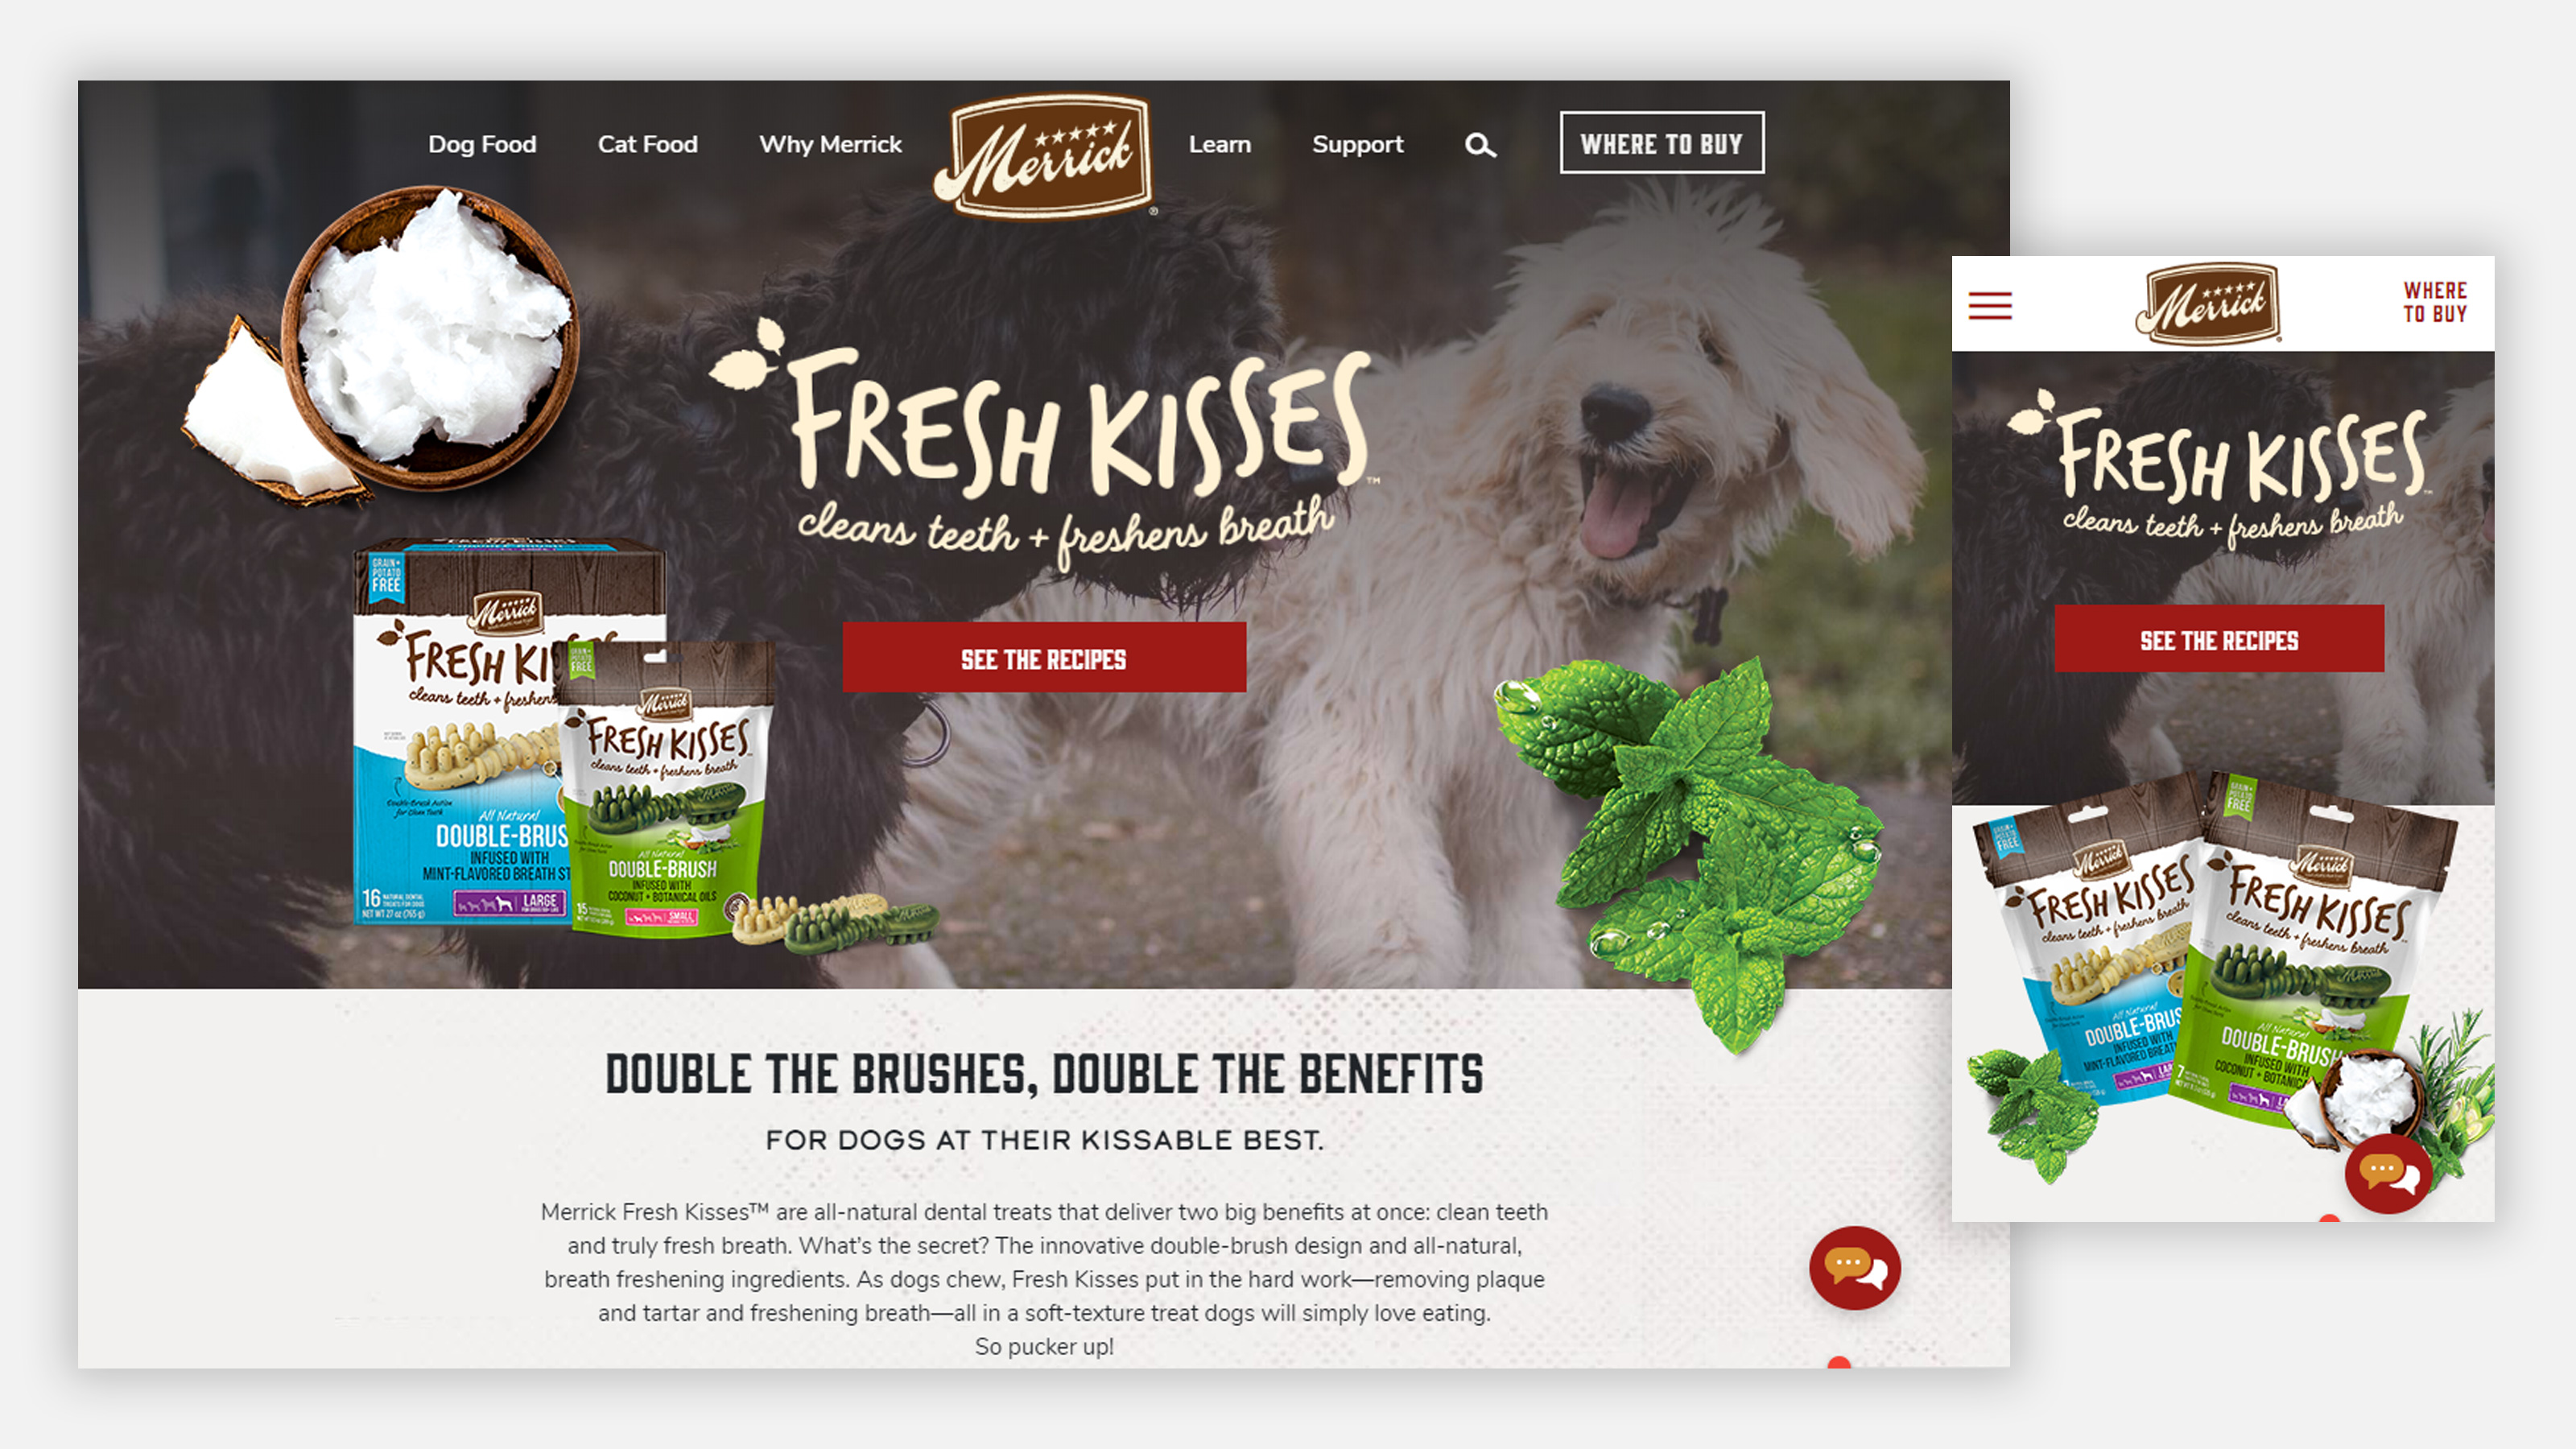 Merrick Fresh Kisses landing page on desktop and mobile